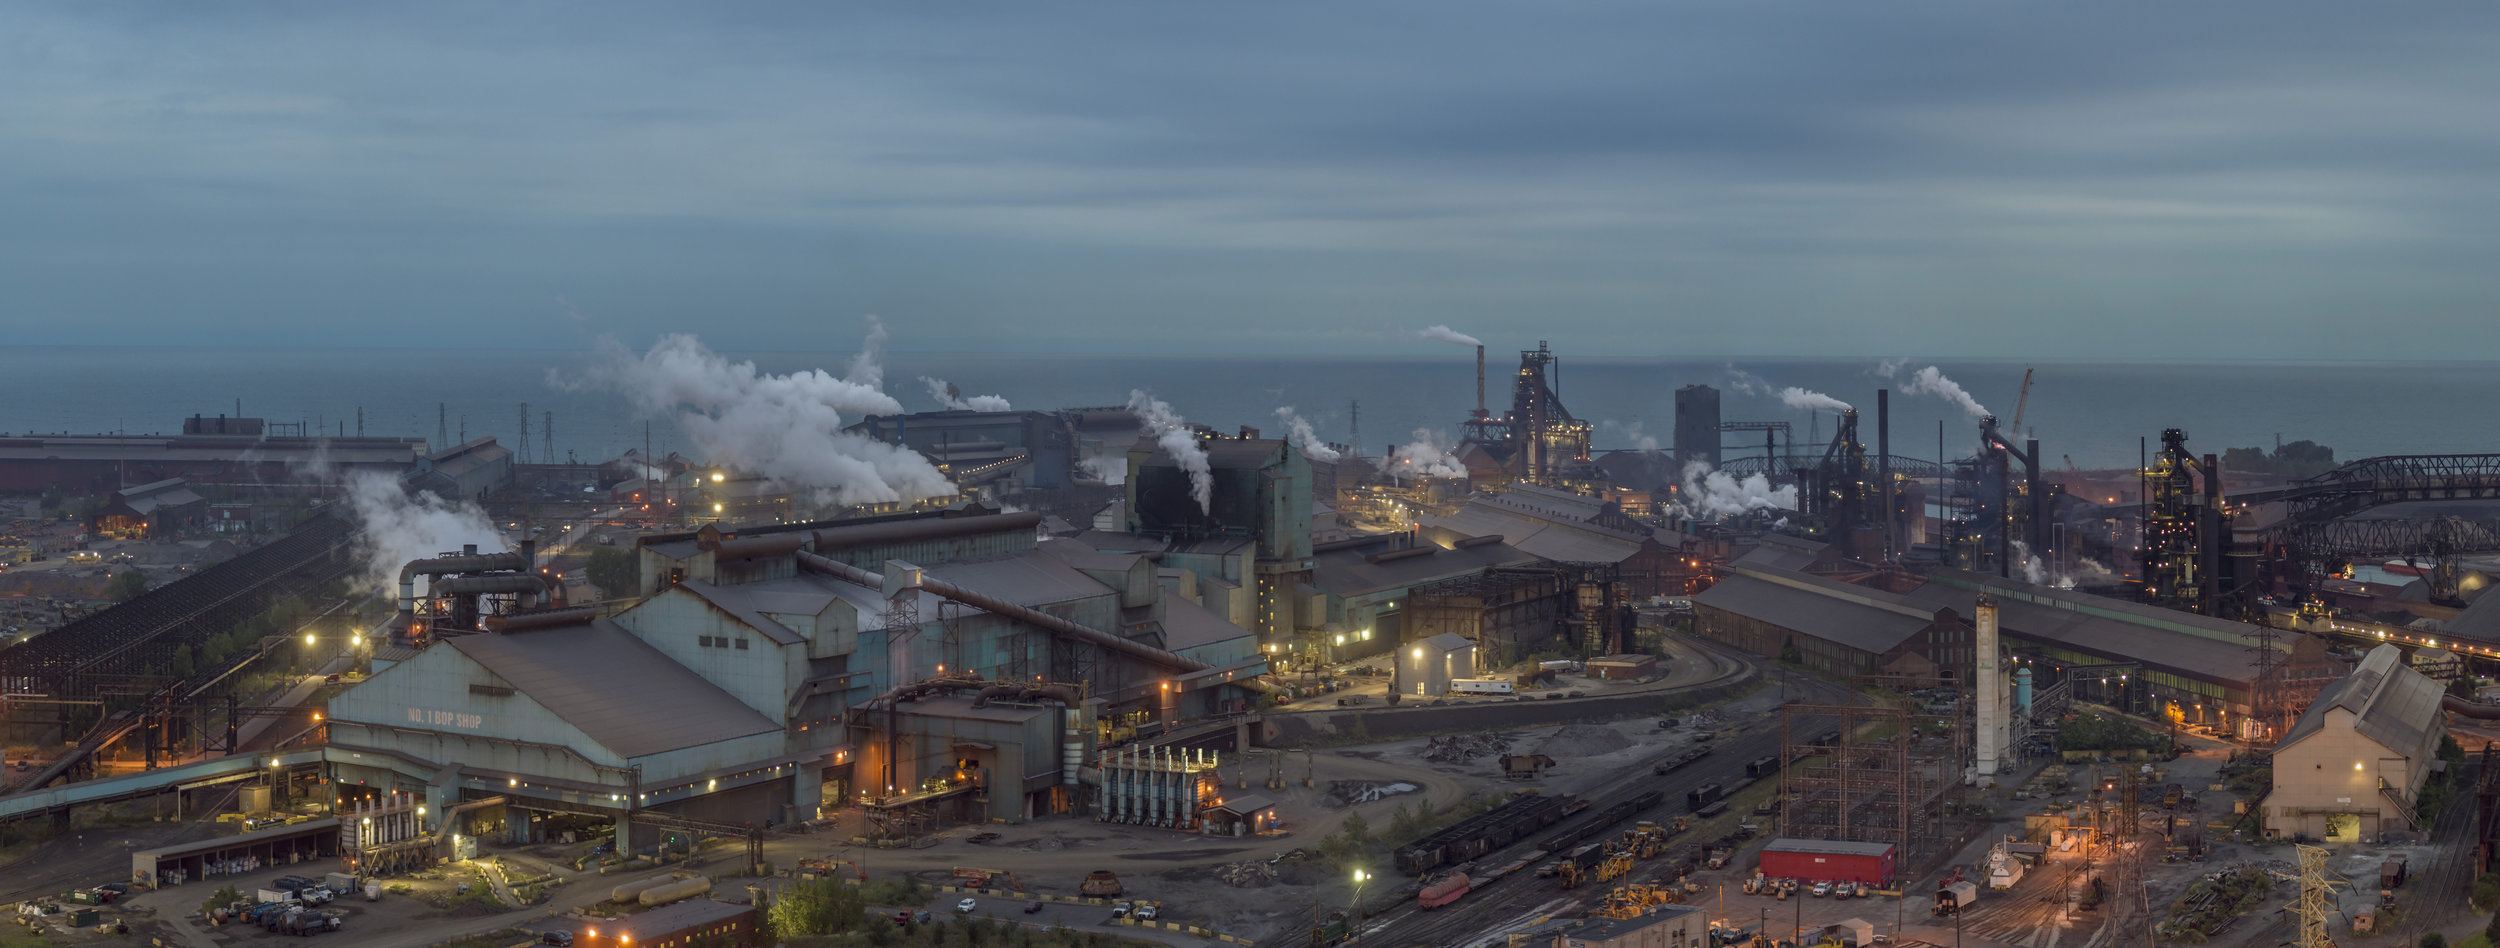 Peter Essick, Steel Mill, Lake Michigan, Gary, Indiana, Gary, Indiana, 2018 26 x 12 inches Archival Pigment Print